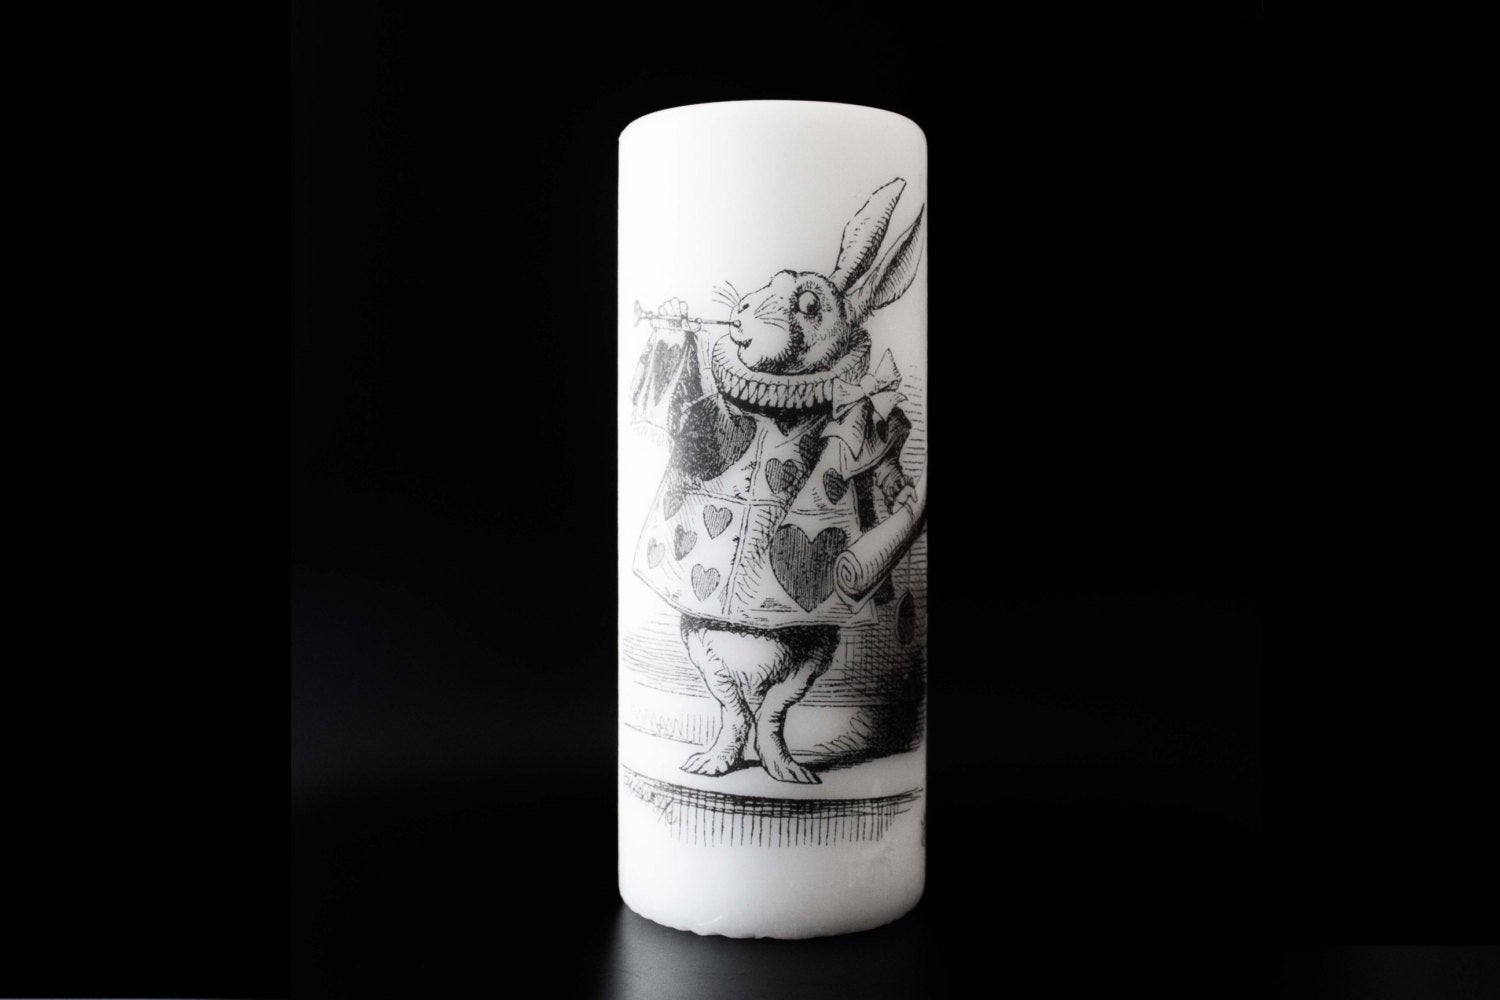 Alice in wonderland - Growing Alice - Pillar Candle - Whimsical Decor - ByCandlelight27